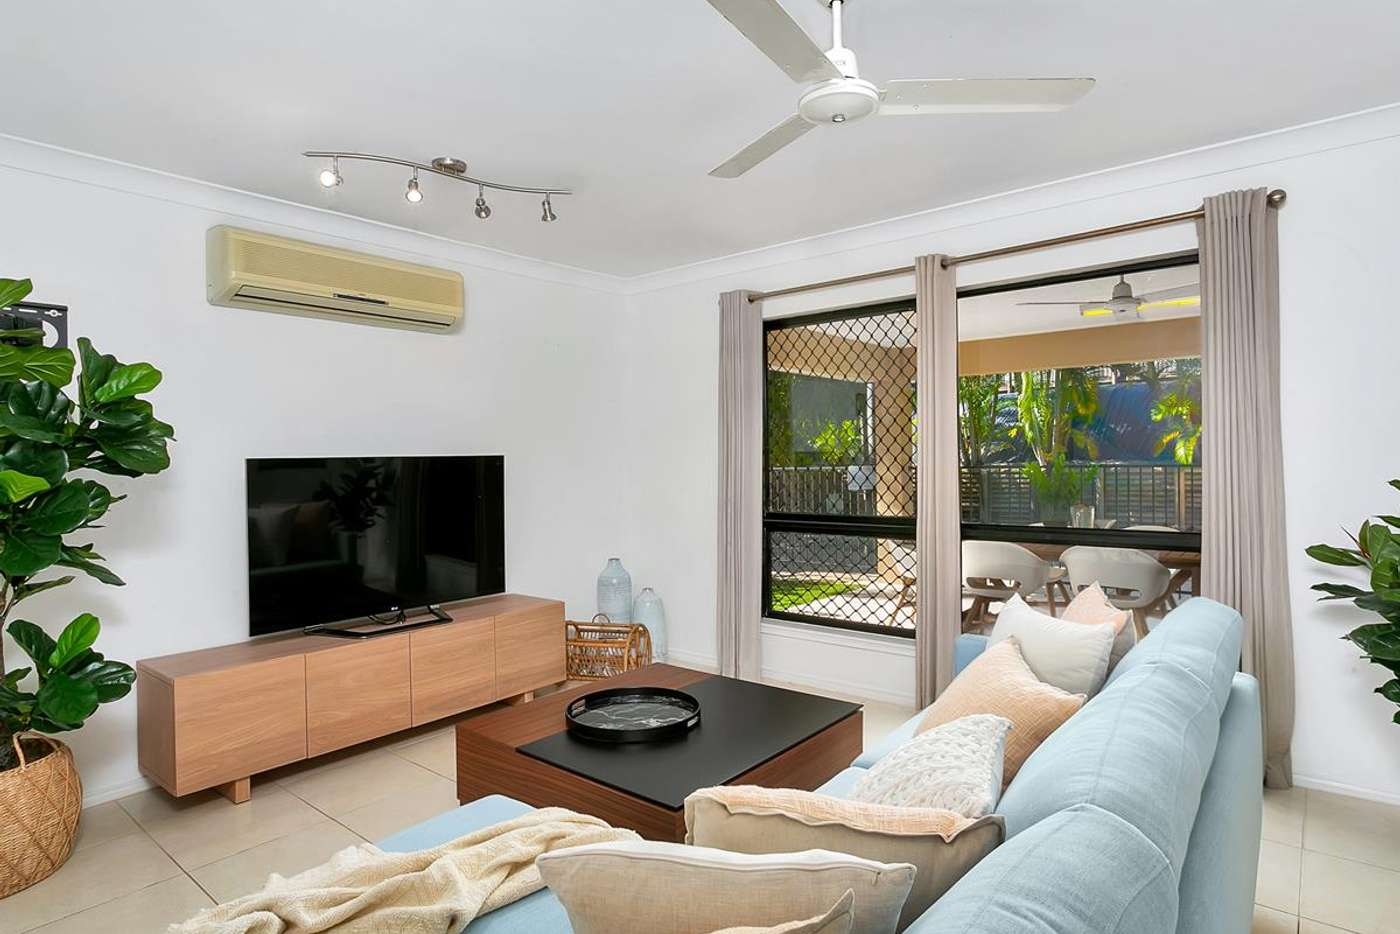 Seventh view of Homely house listing, 28 Greenock Way, Brinsmead QLD 4870